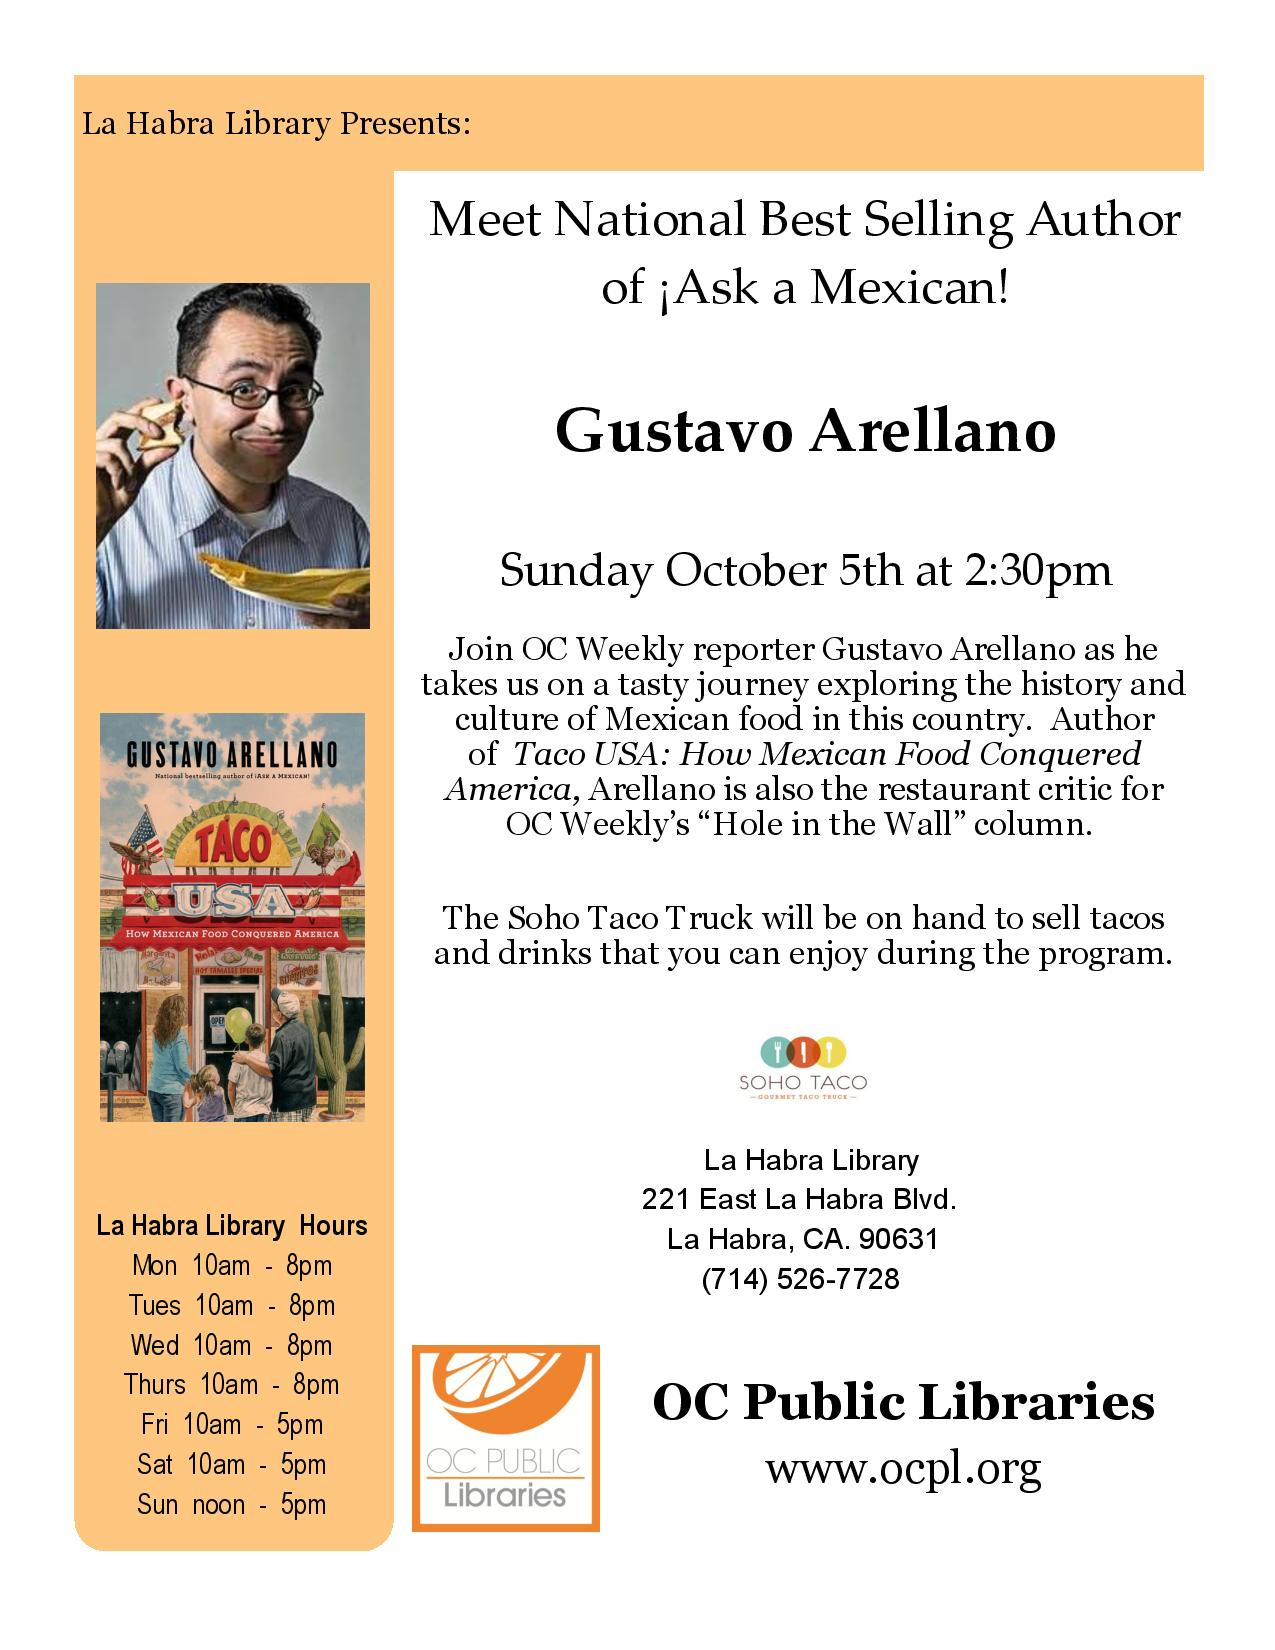 SOHO TACO Gourmet Taco Truck - La Habra Public Library - Lunch With Gustavo Arellano - October 2014